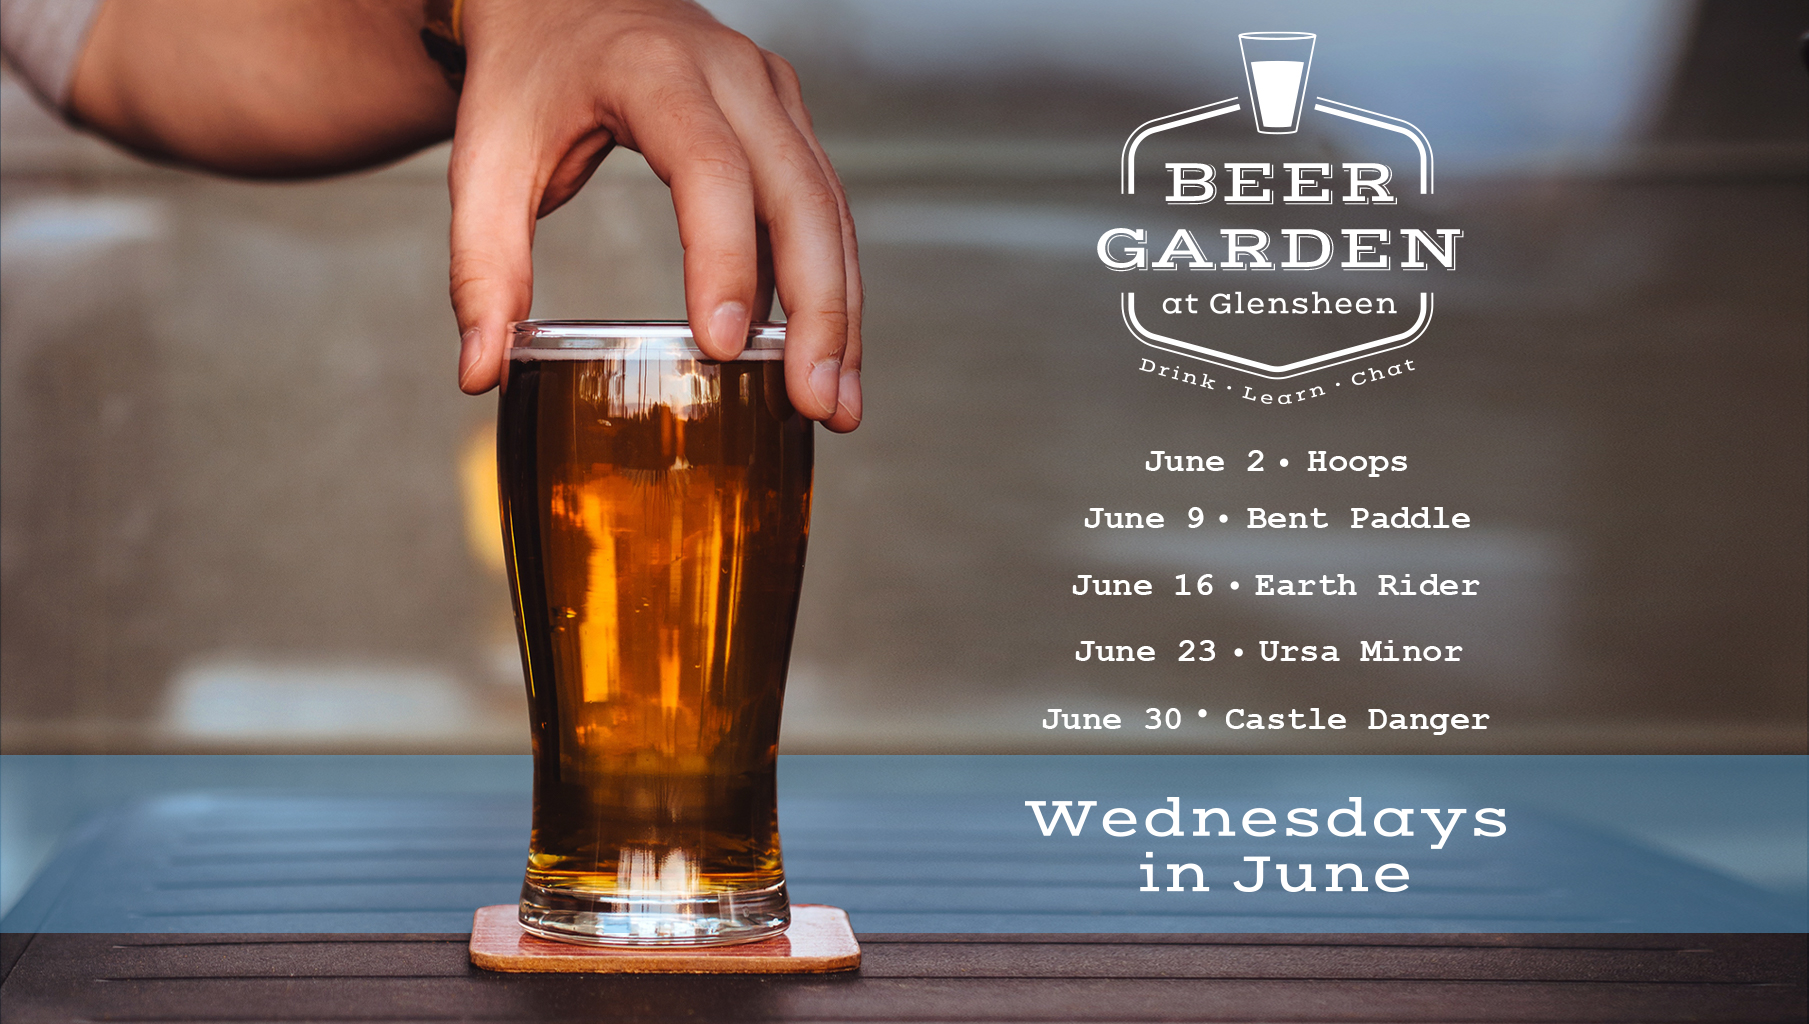 glass of beer with hand and beer garden event dates